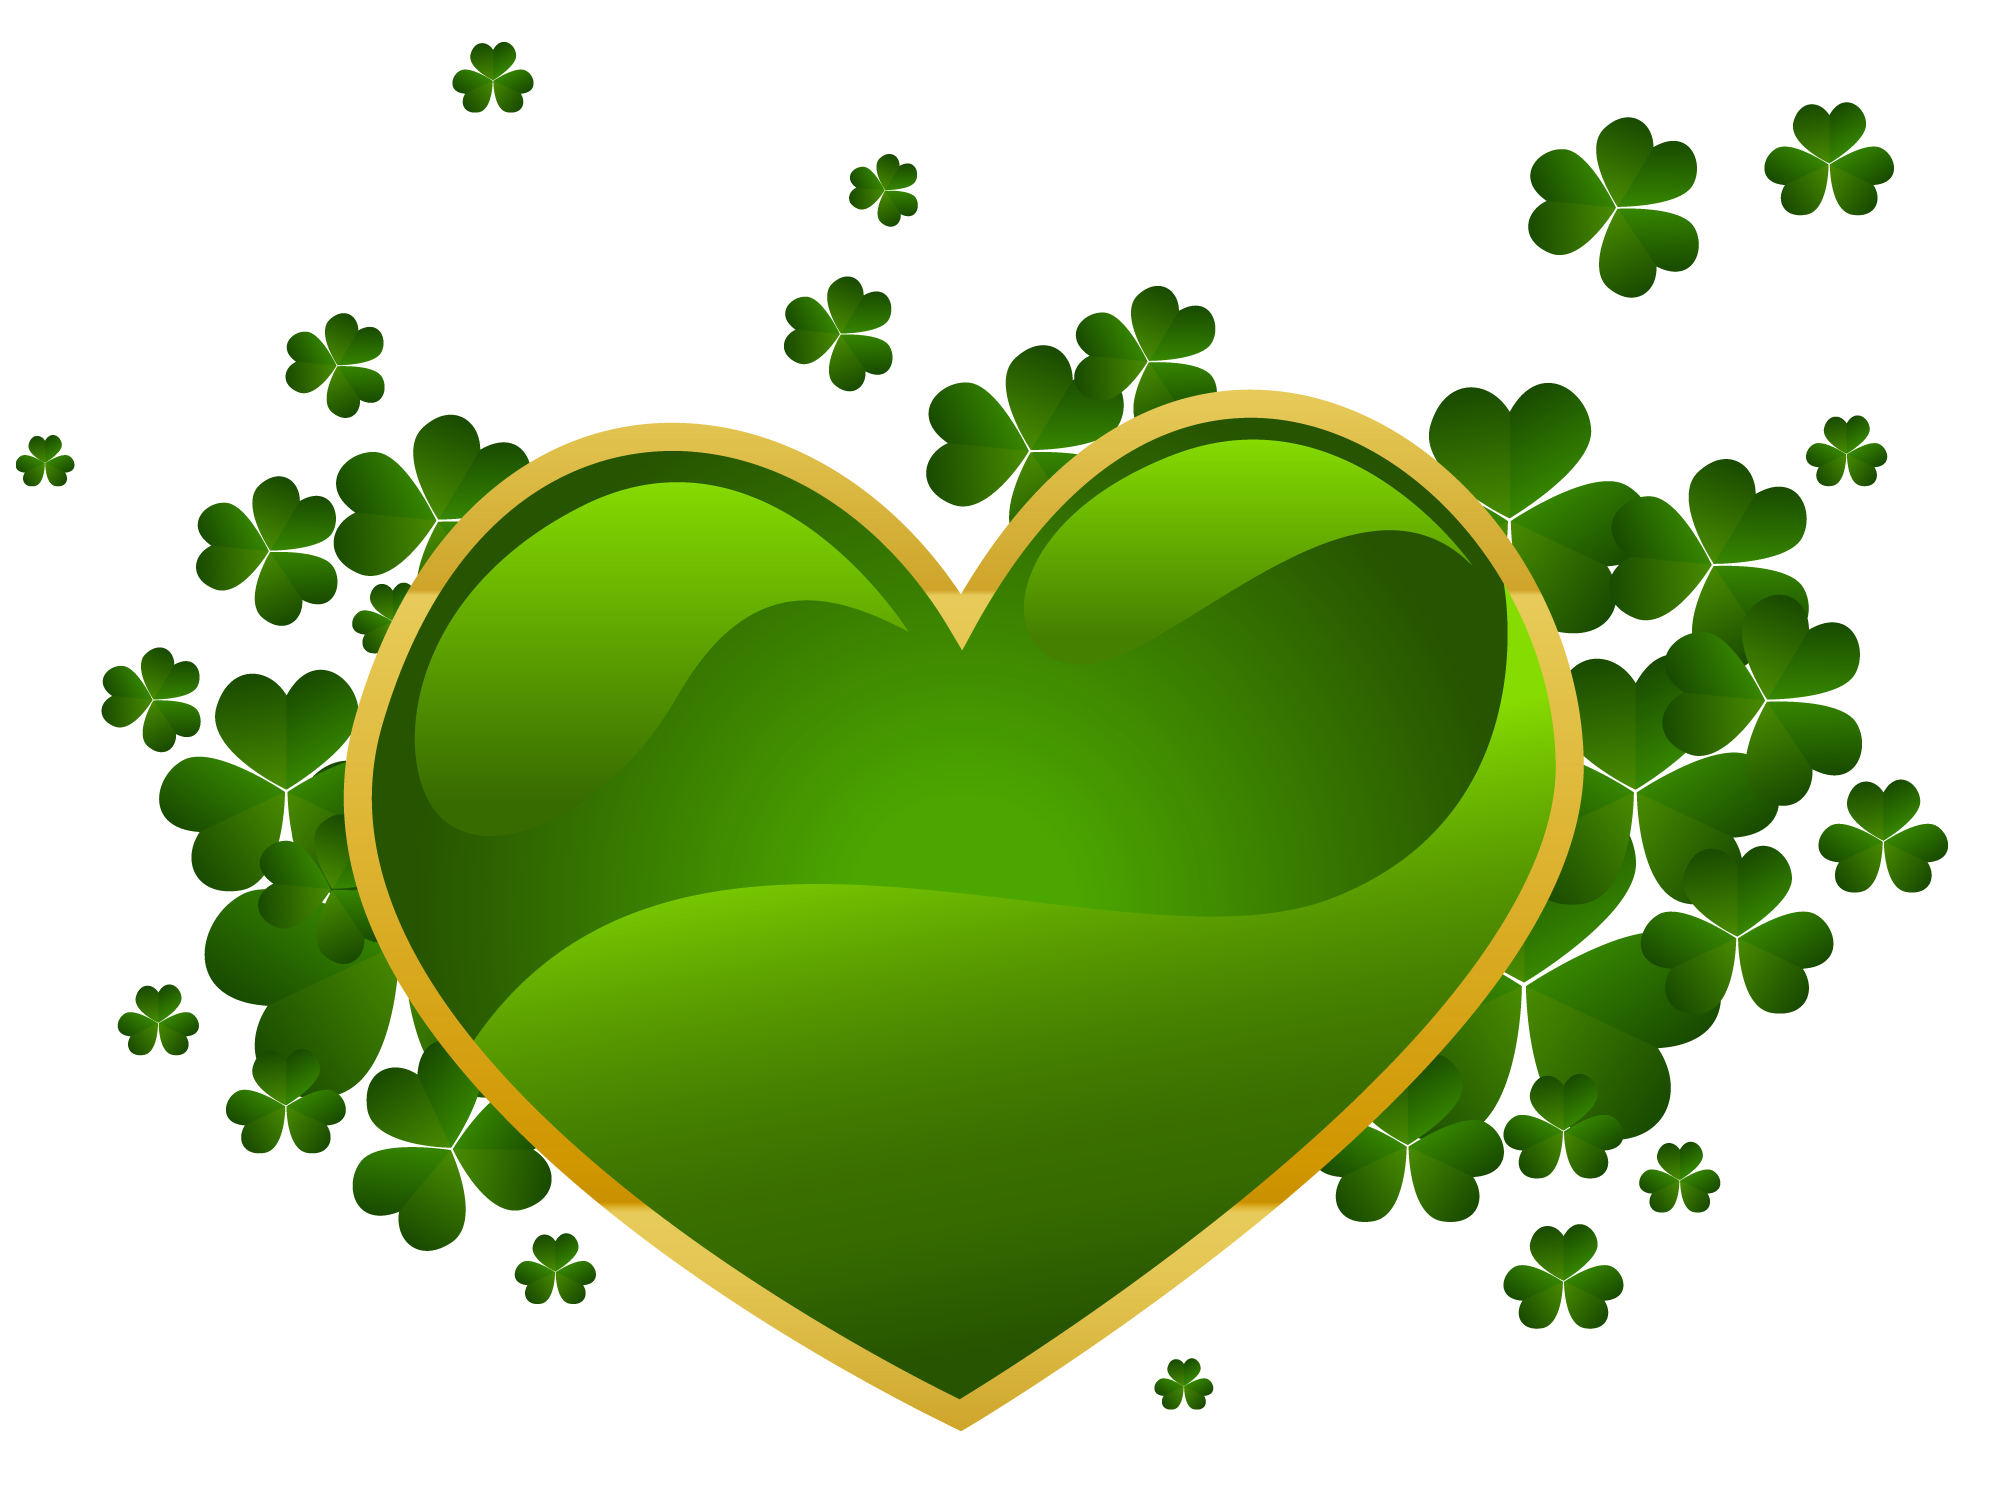 1990x1501 Public Domain Clip Art Shamrocks St Patricks Day Shamrock Clip Art